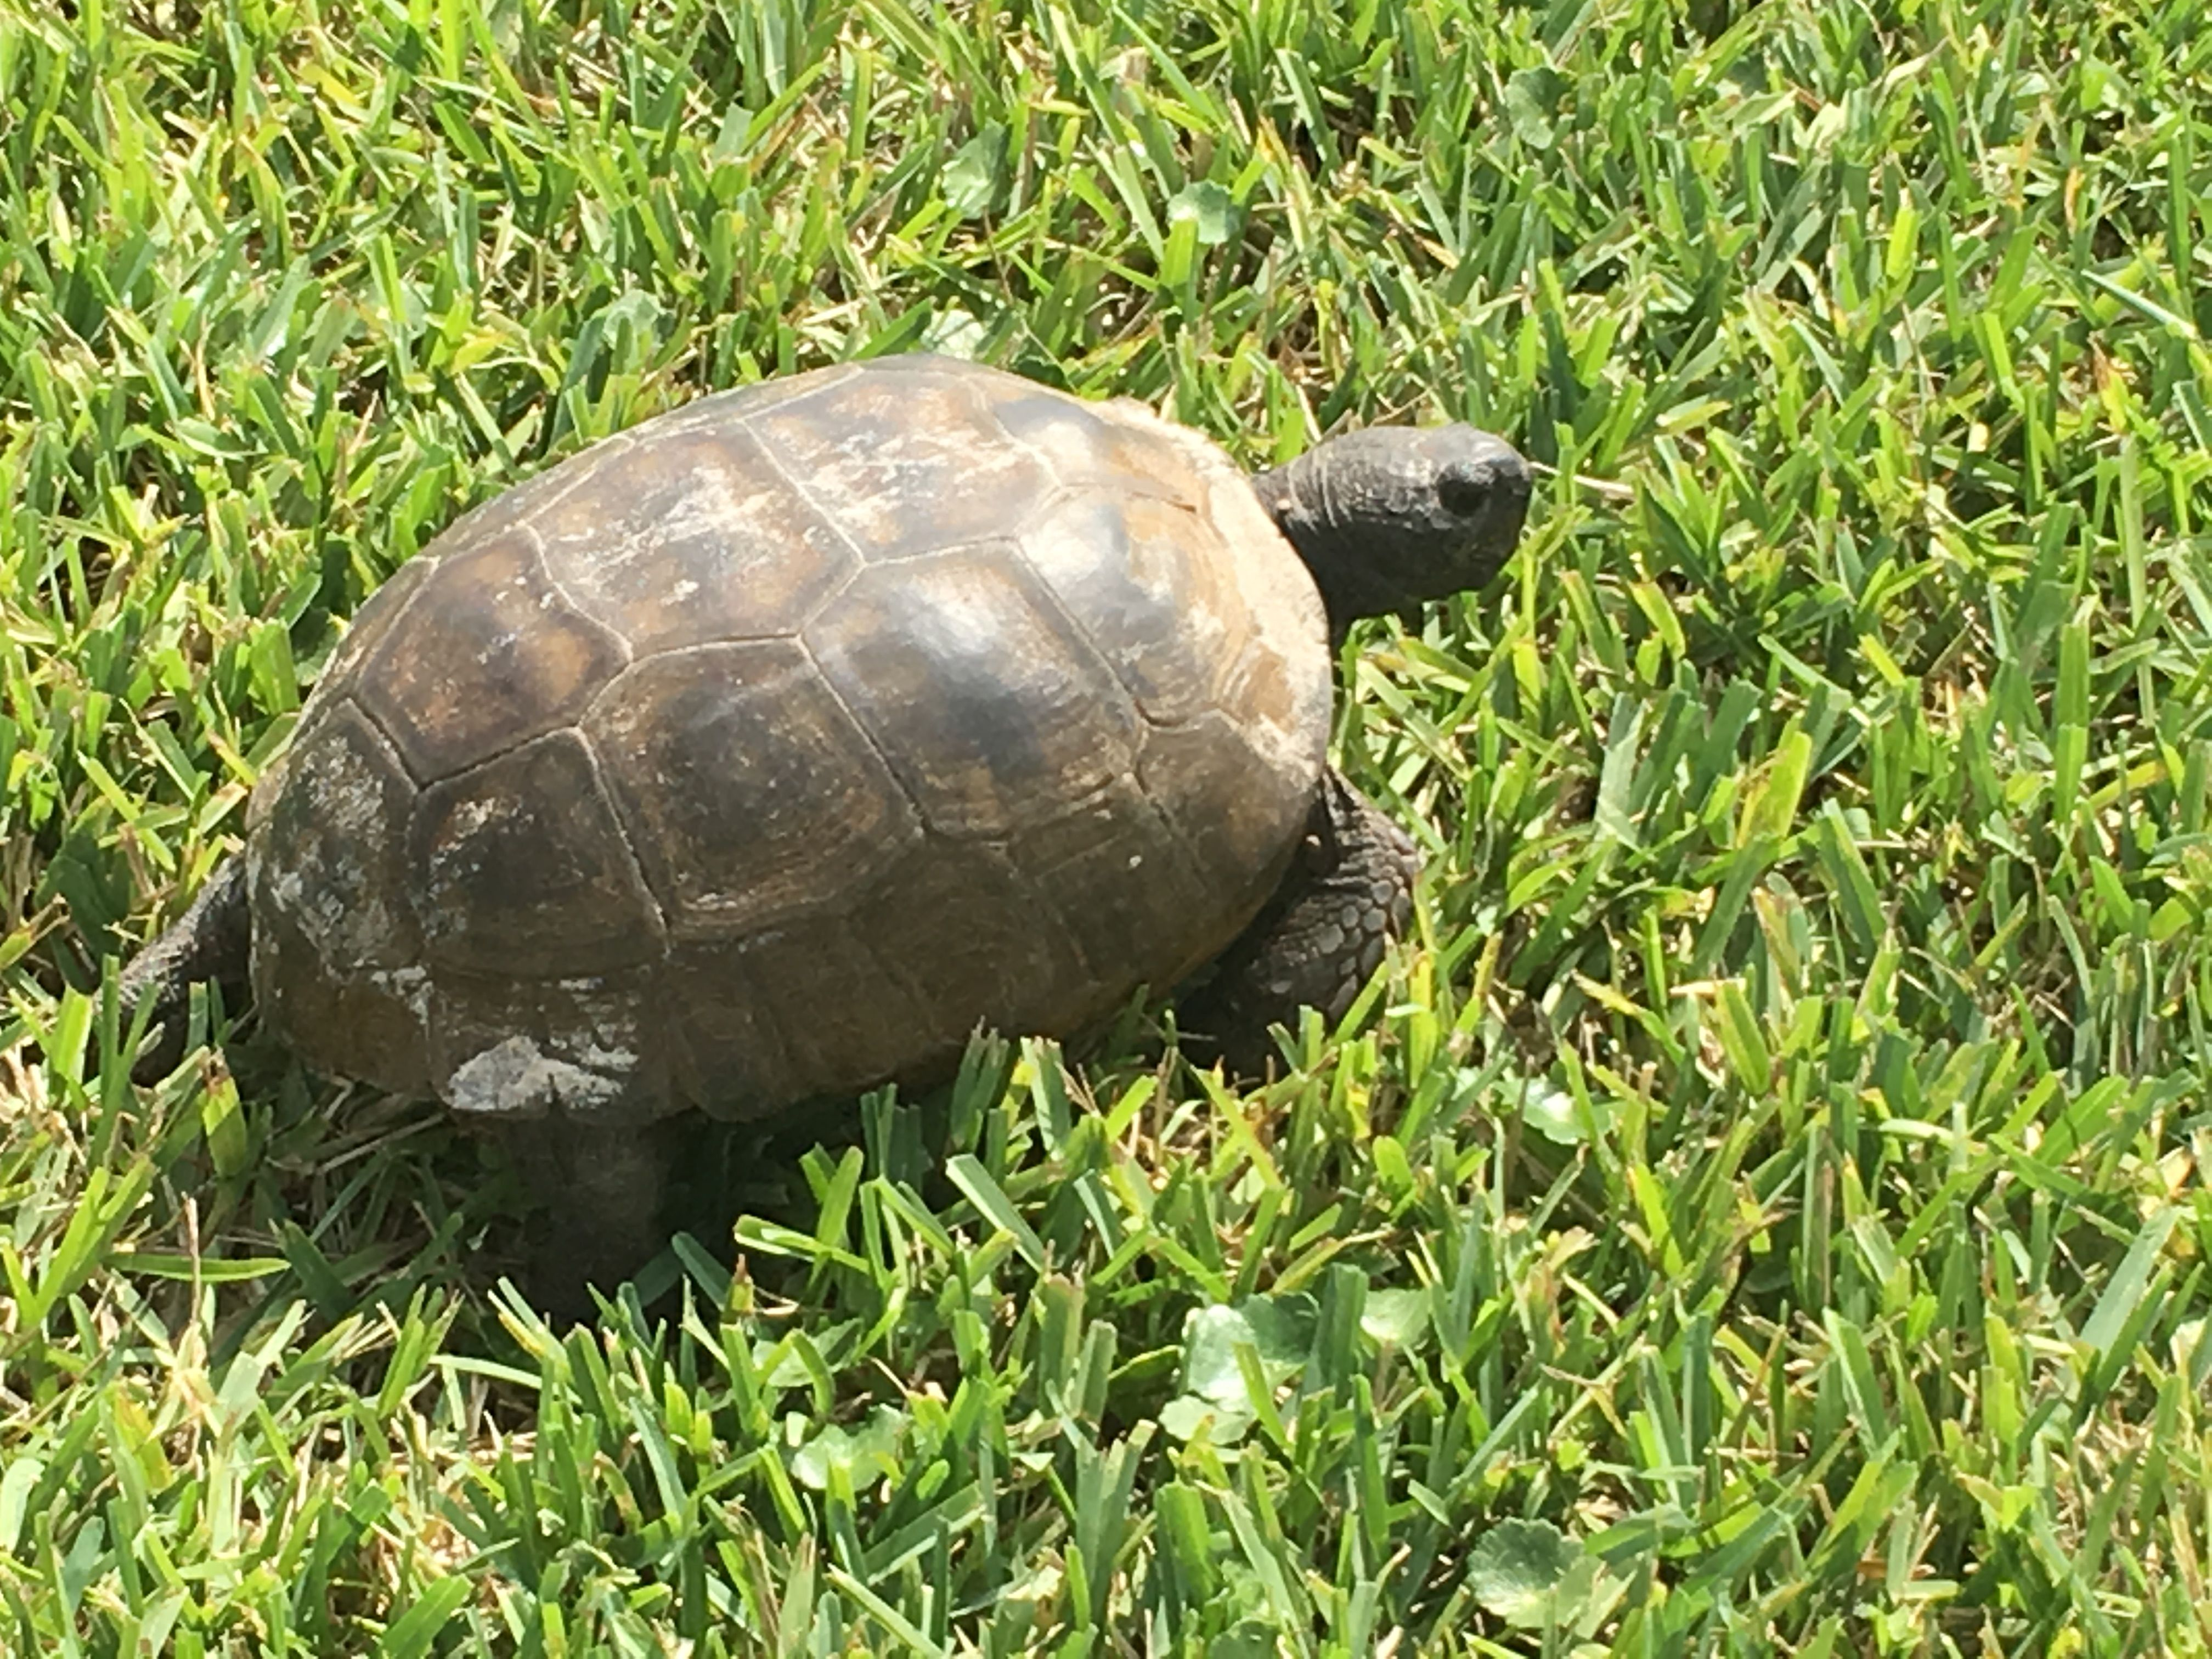 One of our many resident turtles or Gopher Tortoises here